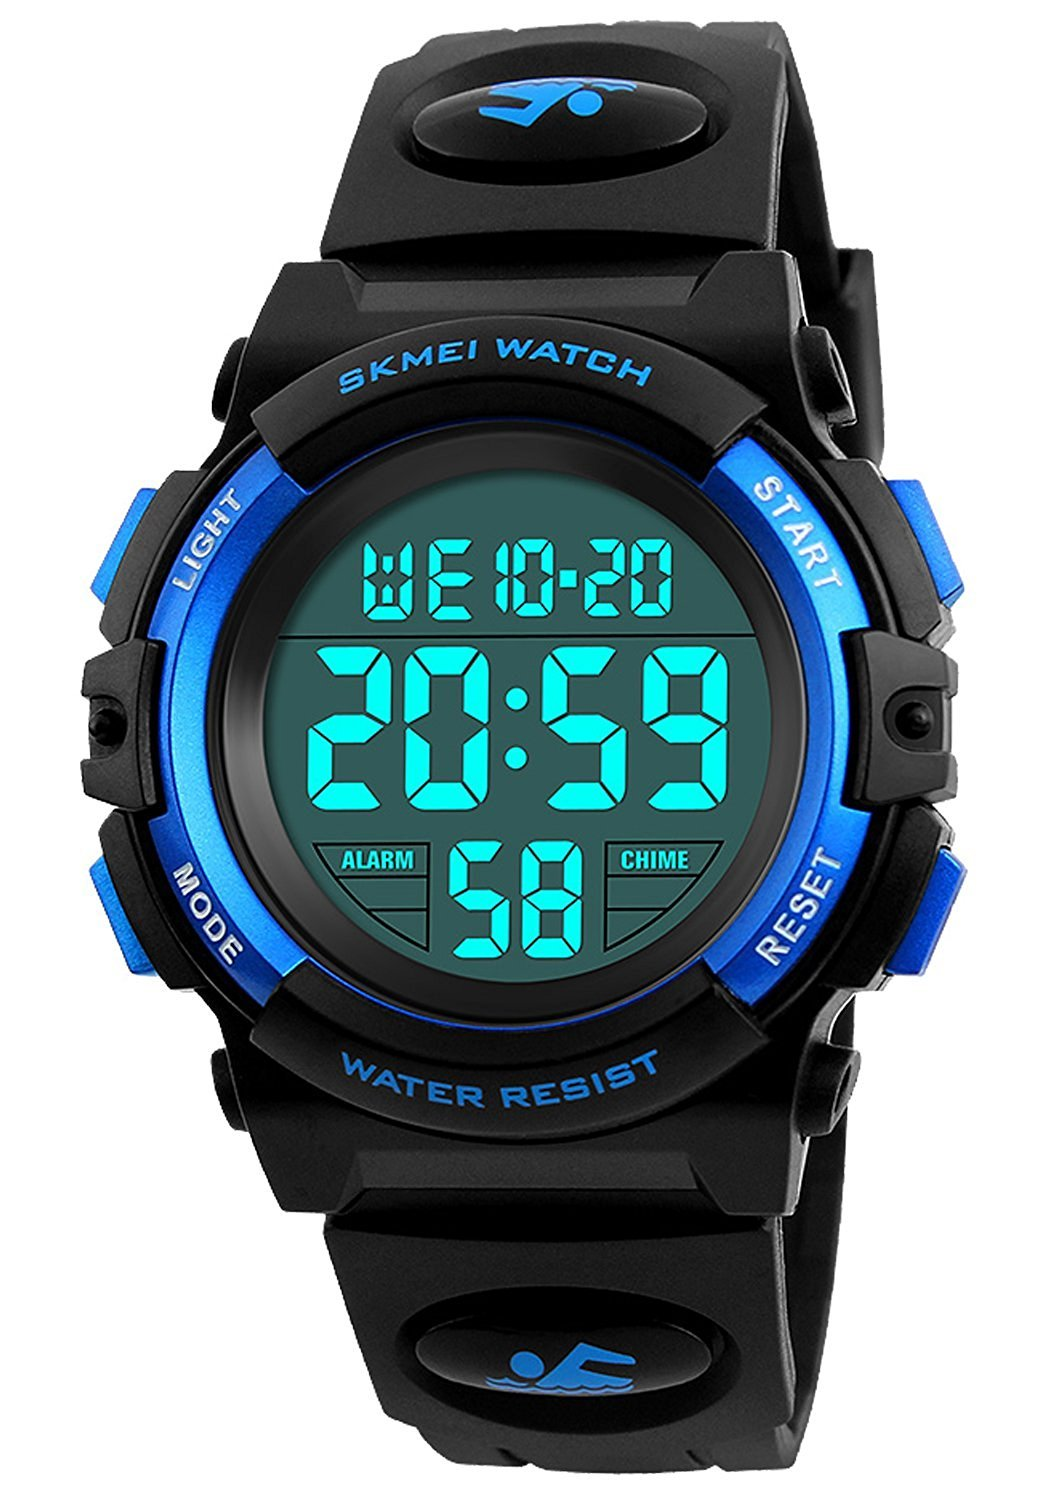 Boys Girls 50M Waterproof Watches,Sports Watch, LED Digital Watch Features Alarm, Stopwatch , Kids Watch (Blue) by Gosasa